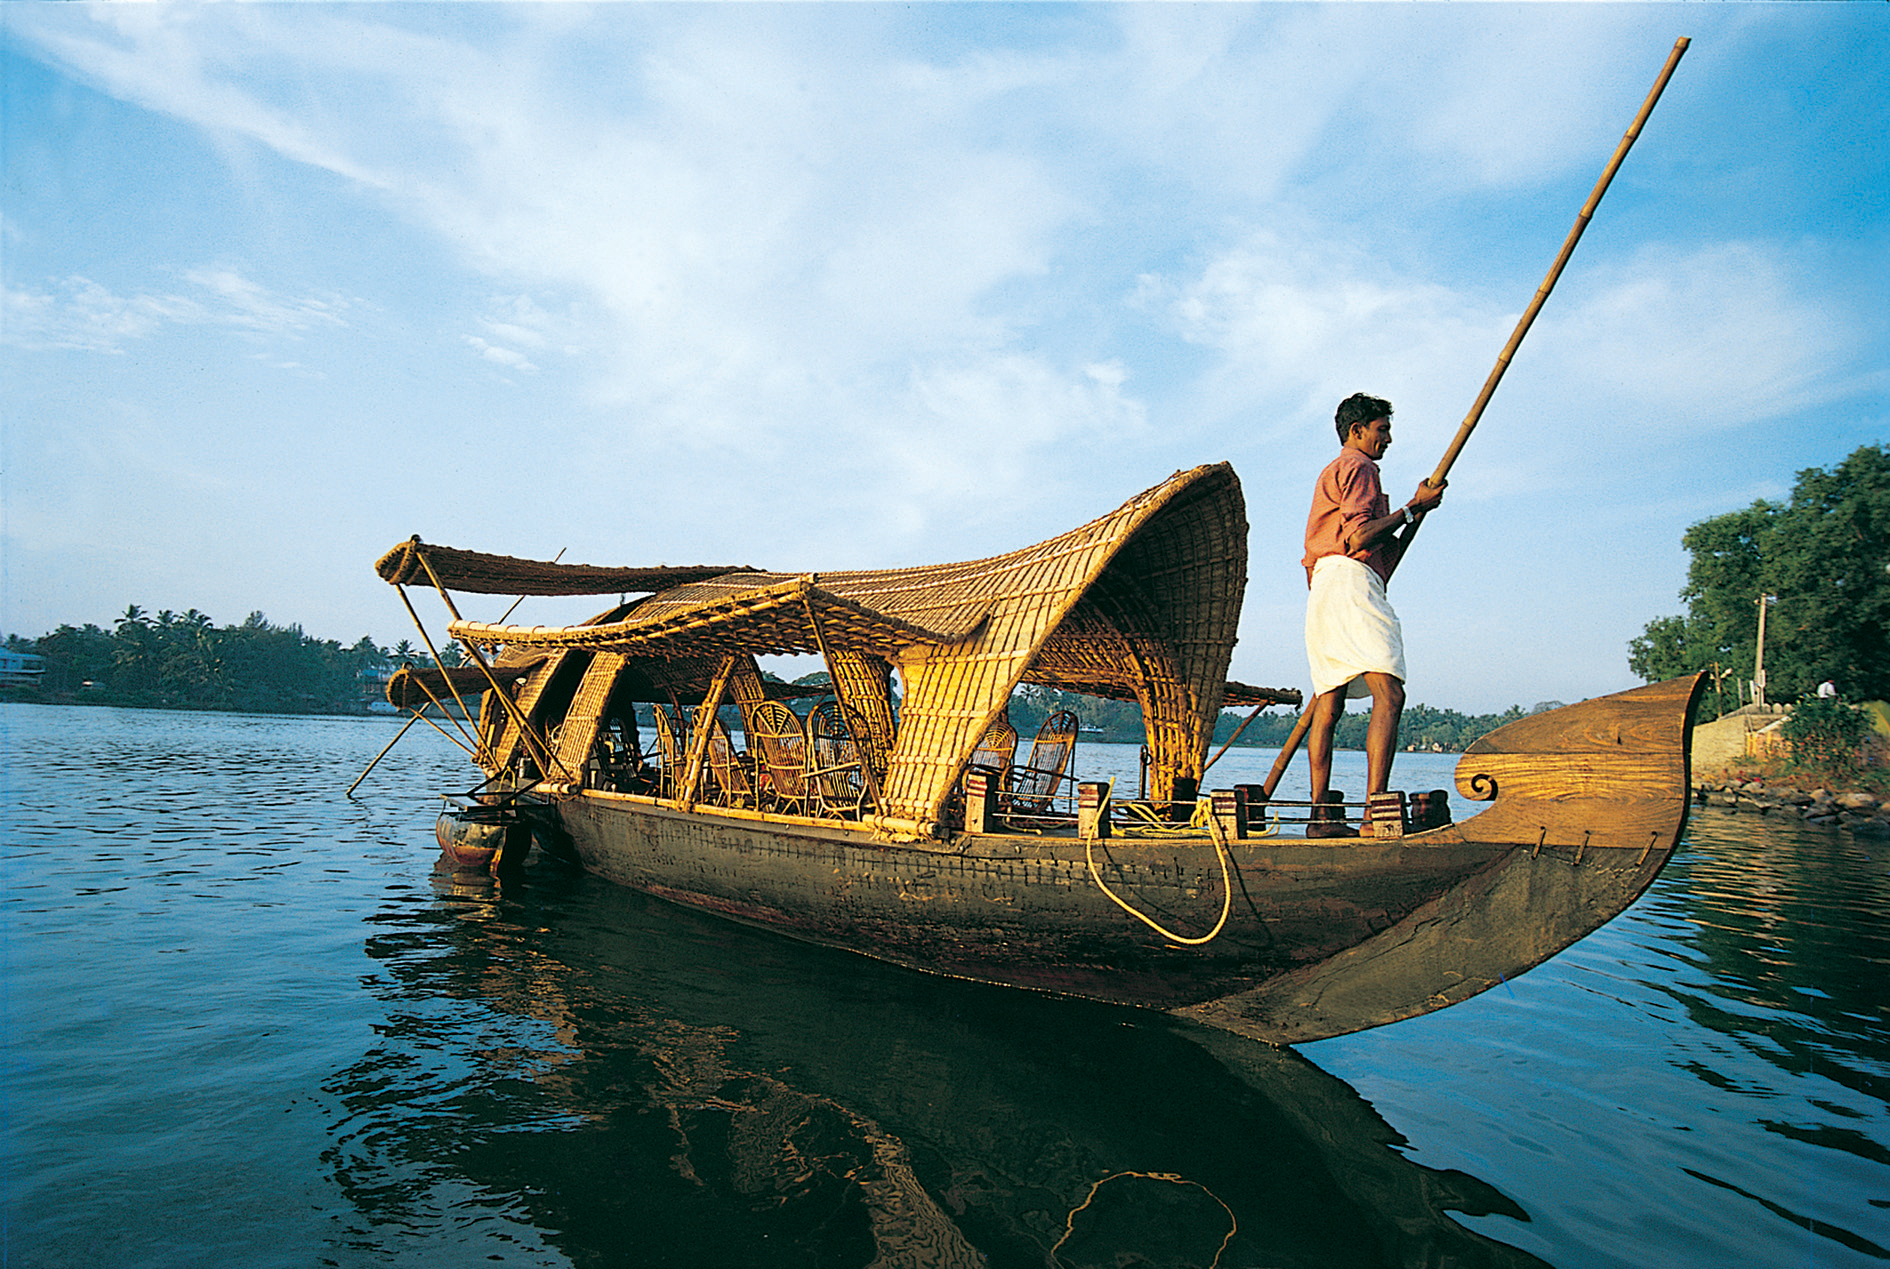 tourism in kerala Kerala tourism official website provides text, photos, video, on travel destinations , hotels, accommodation, culture, heritage, art forms and people of god's own.